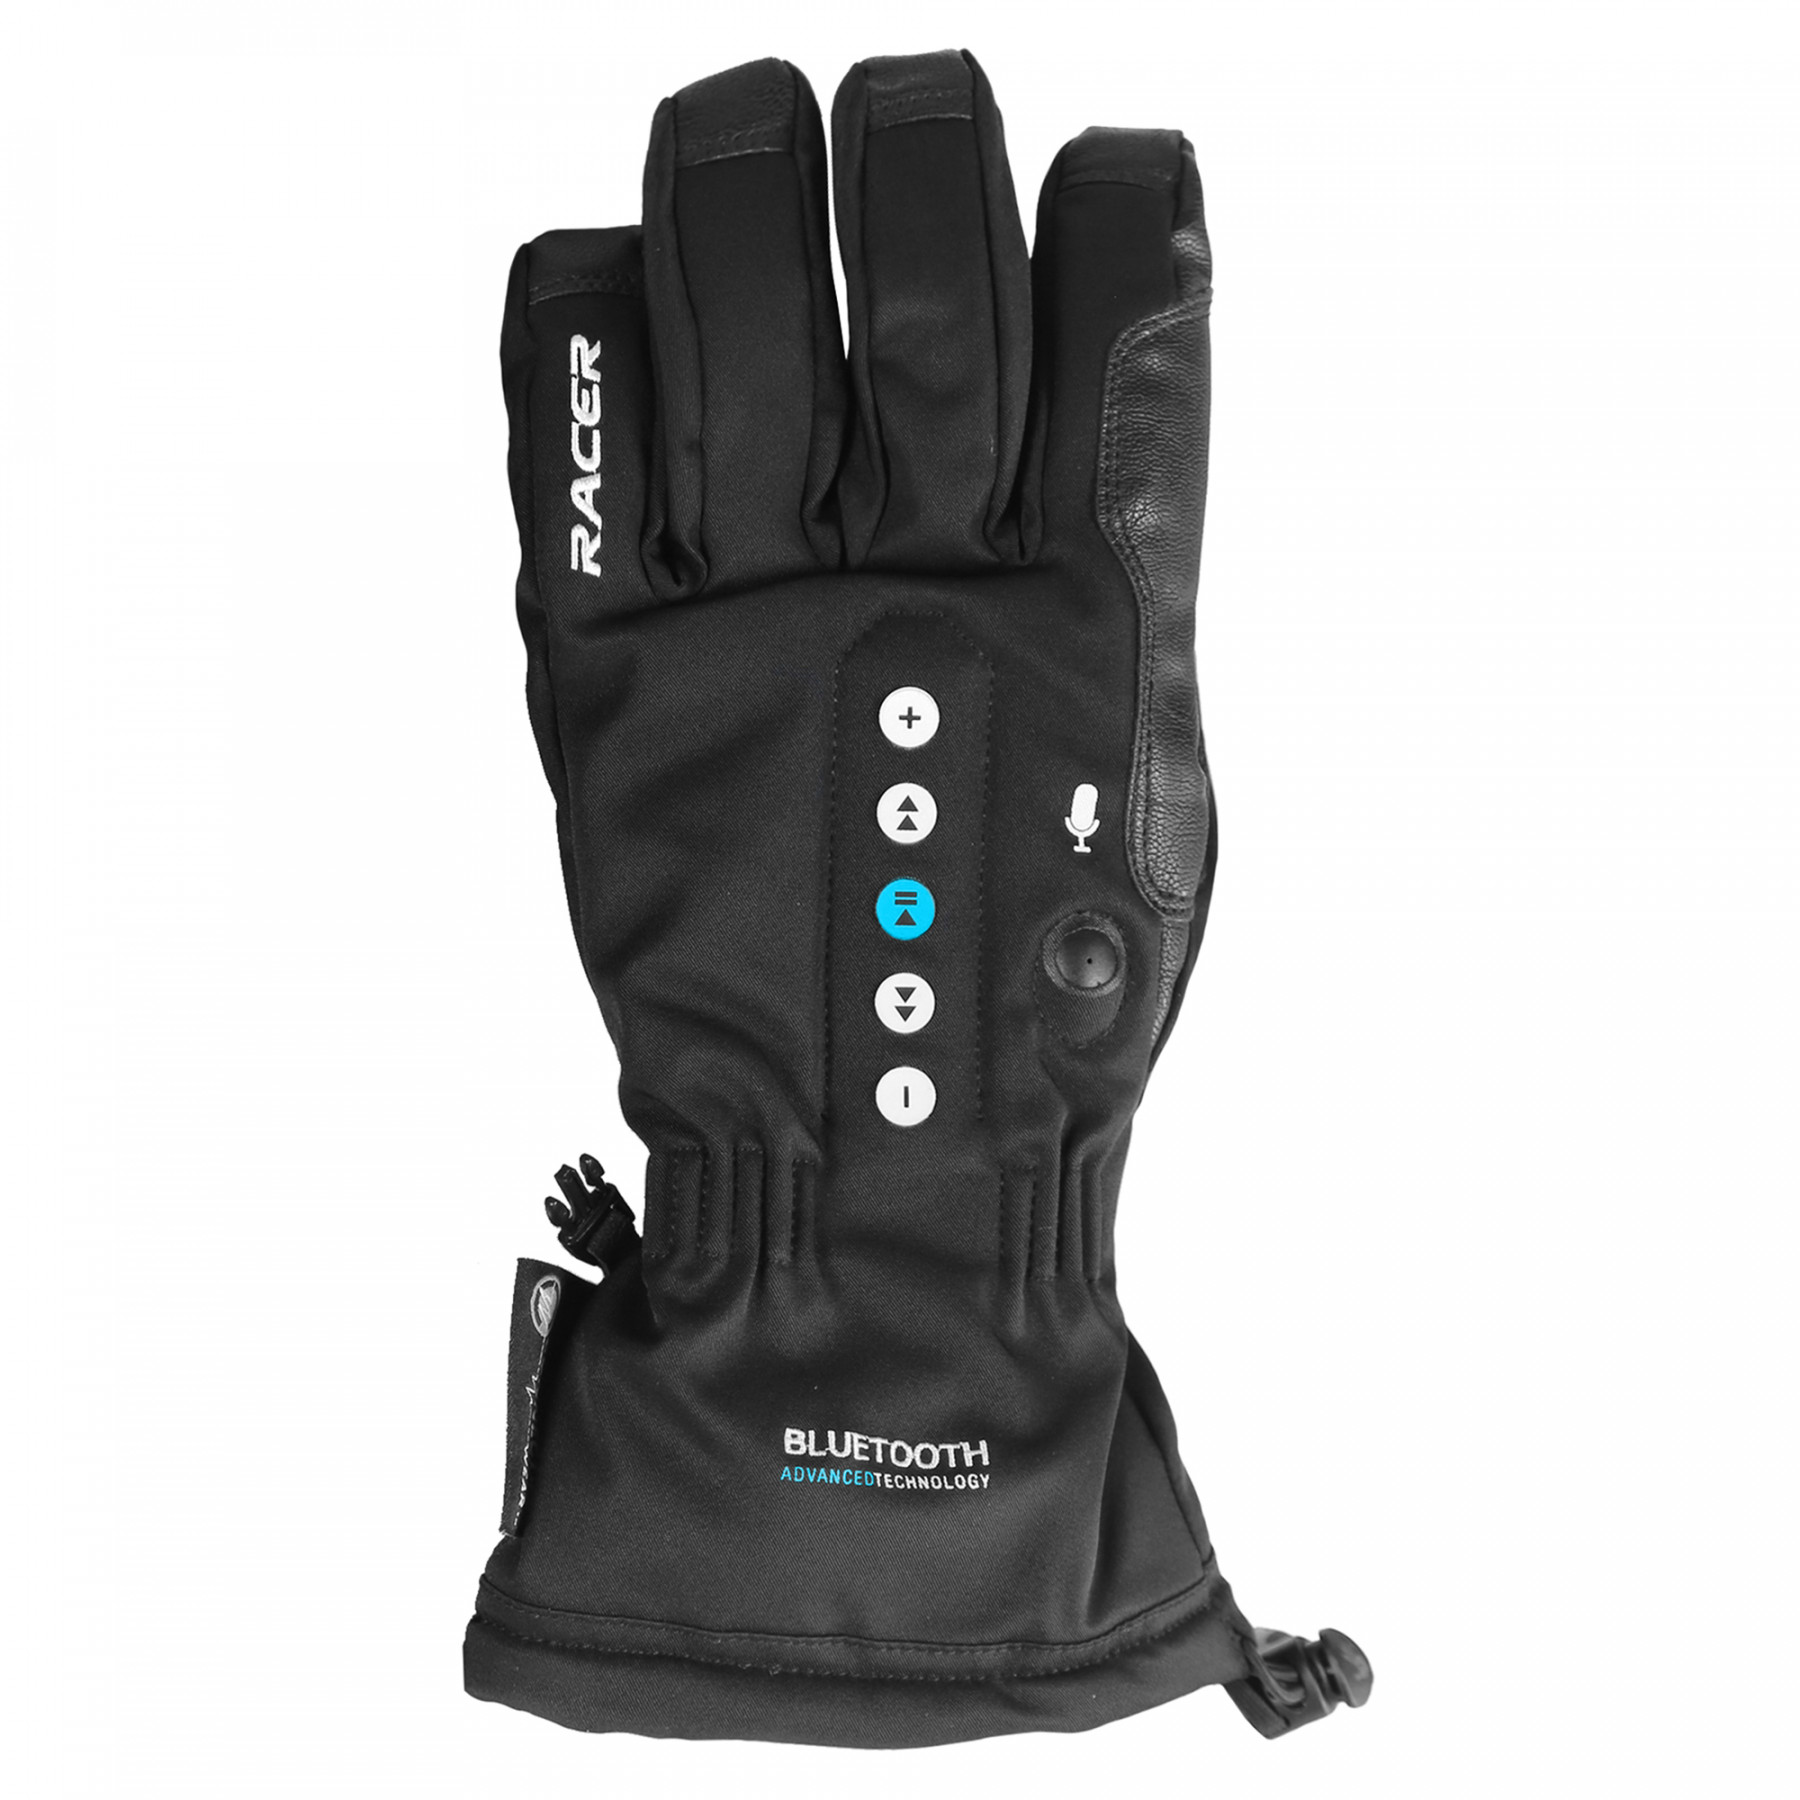 Bluetooth Gants Ski Adulte